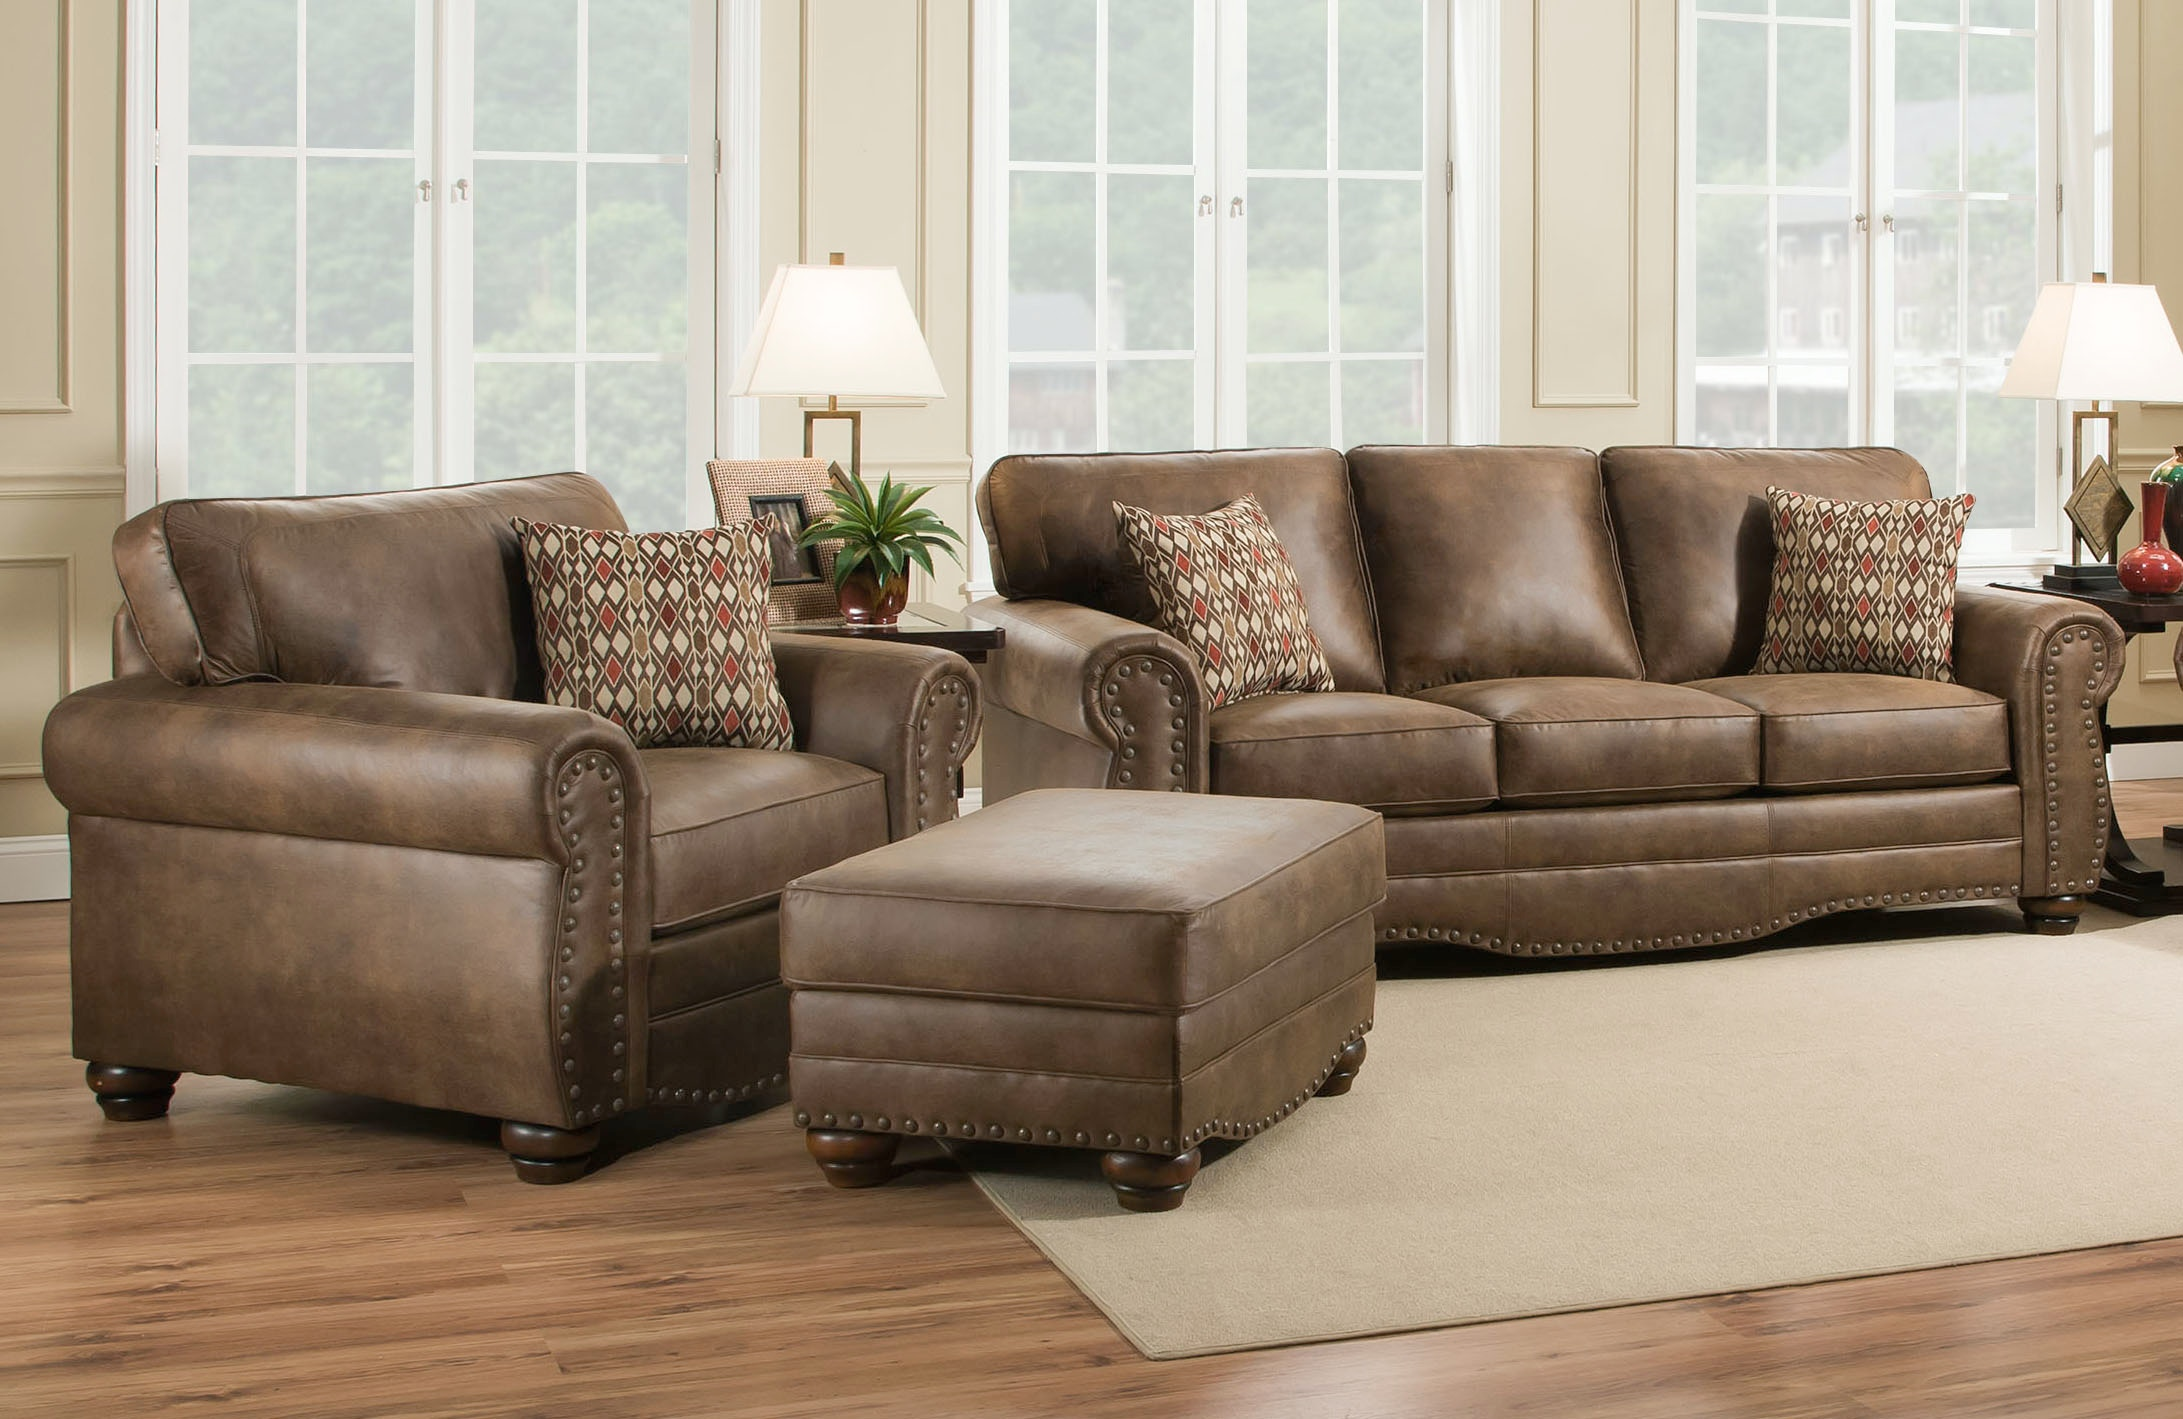 Leather Sofa And Loveseat Houston Tx Dakota Sofa Bernhardt Star Furniture Houston Tx Furniture